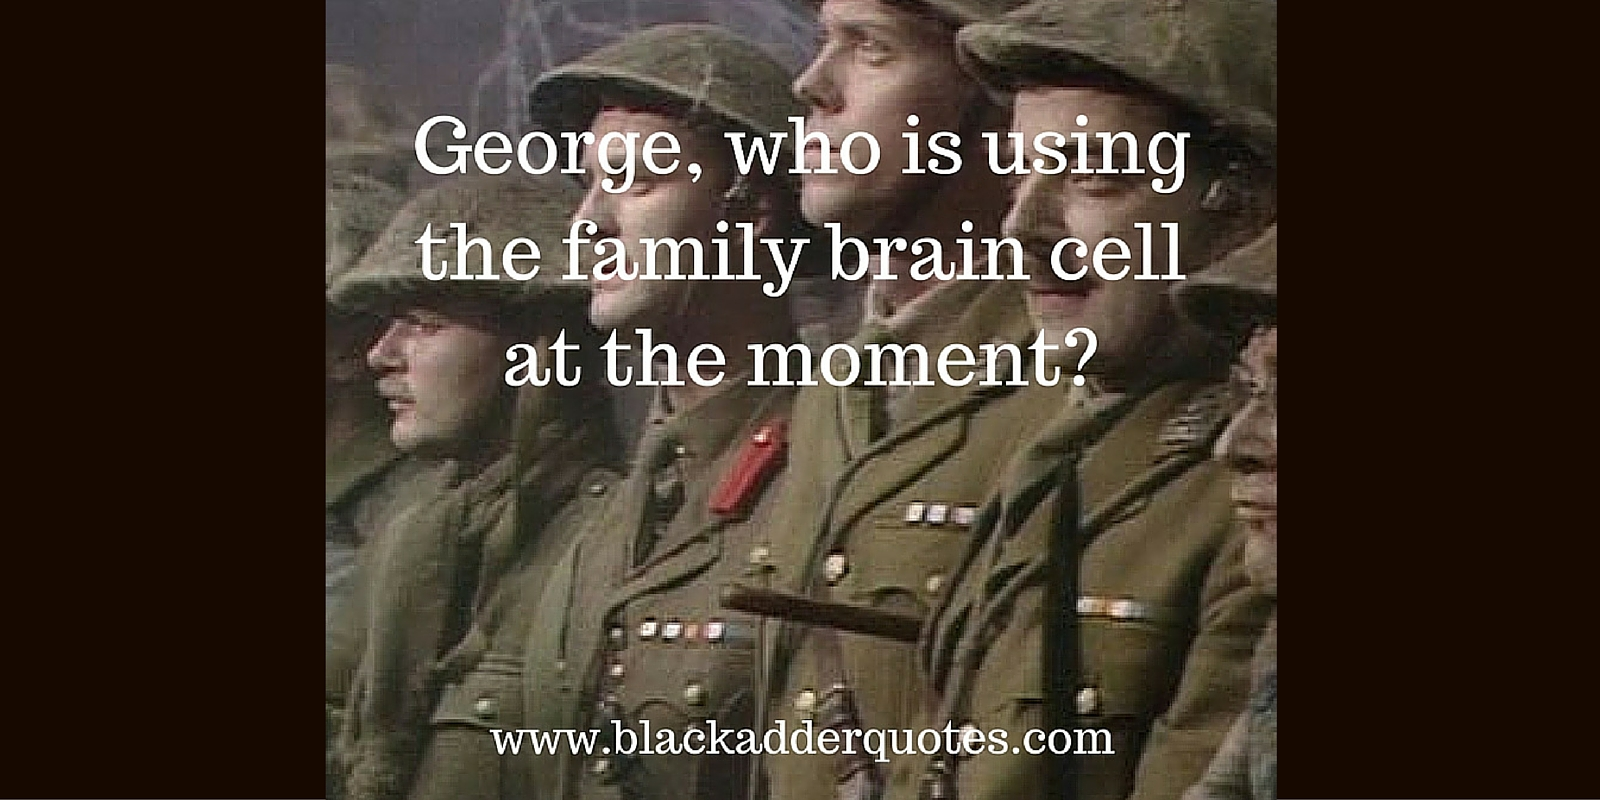 A collection of great Blackadder quotes from Blackadder Goes Forth. Who is using the family brain cell at the moment?